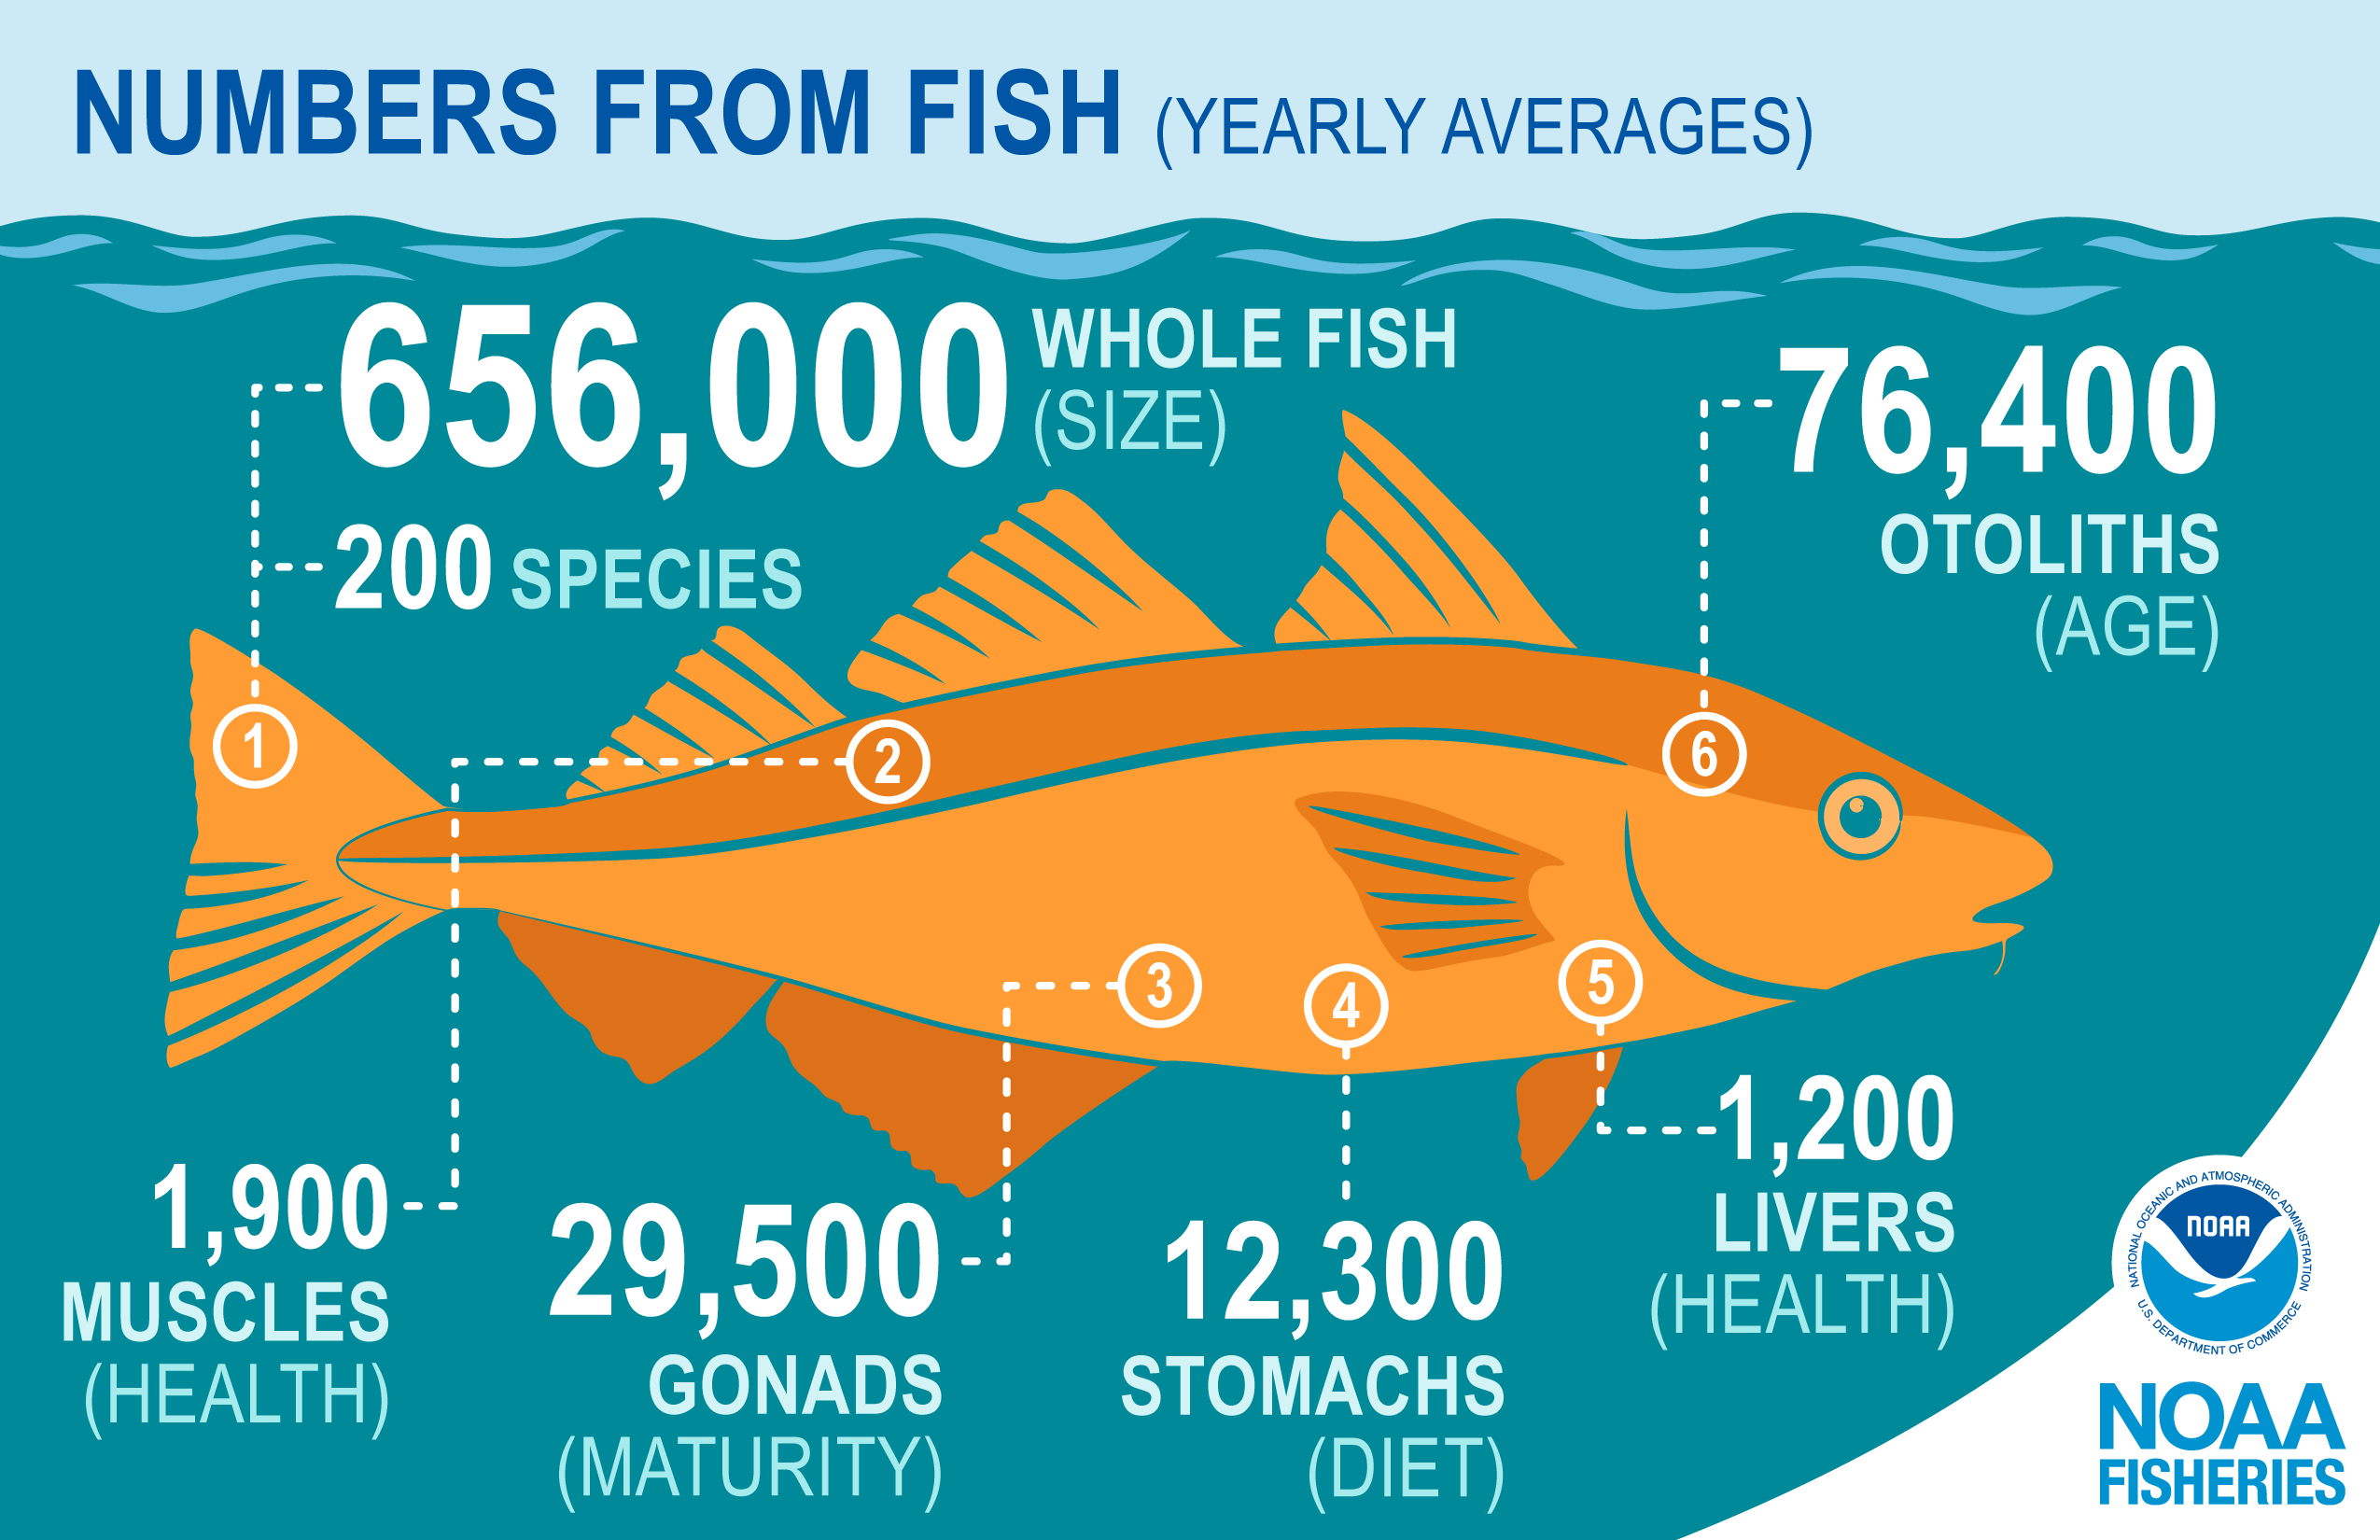 The infographic shows the average total numbers collected annually for different fish parts connected by dotted white lines to the approximate area where the parts are located on an orange haddock illustration with a dark aqua blue background and lighter blue waves.